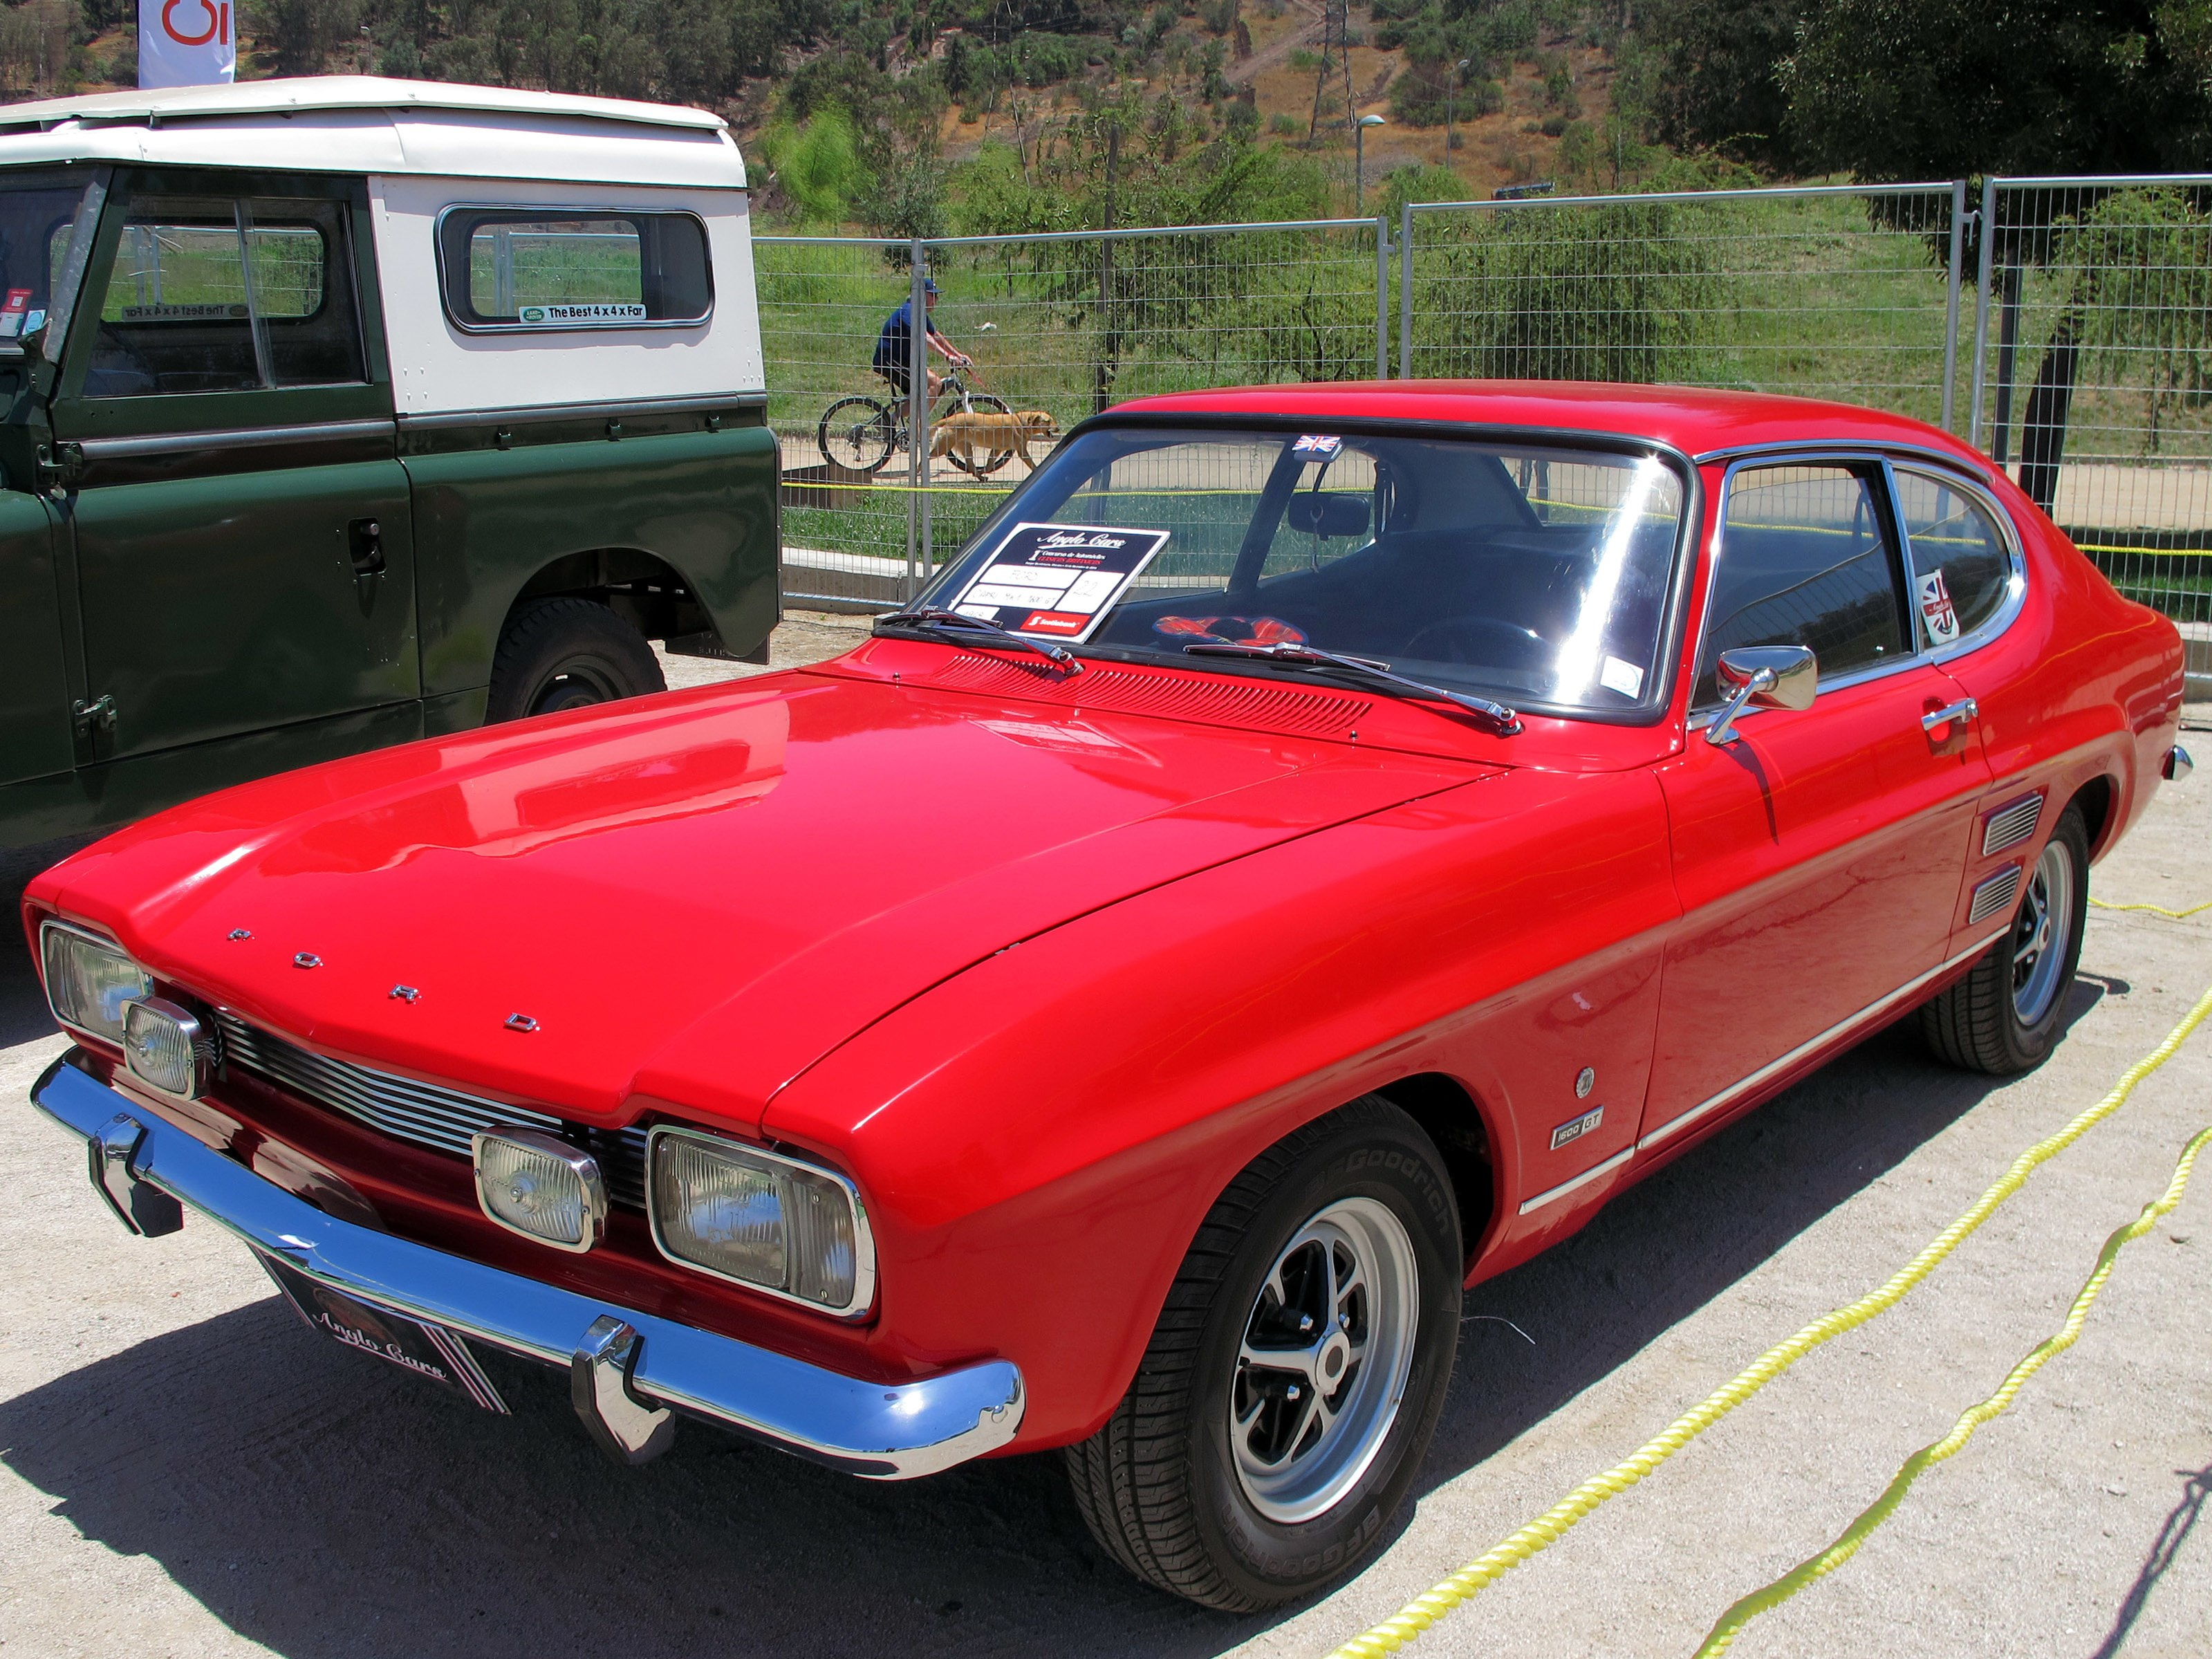 Ford Capri - The complete information and online sale with